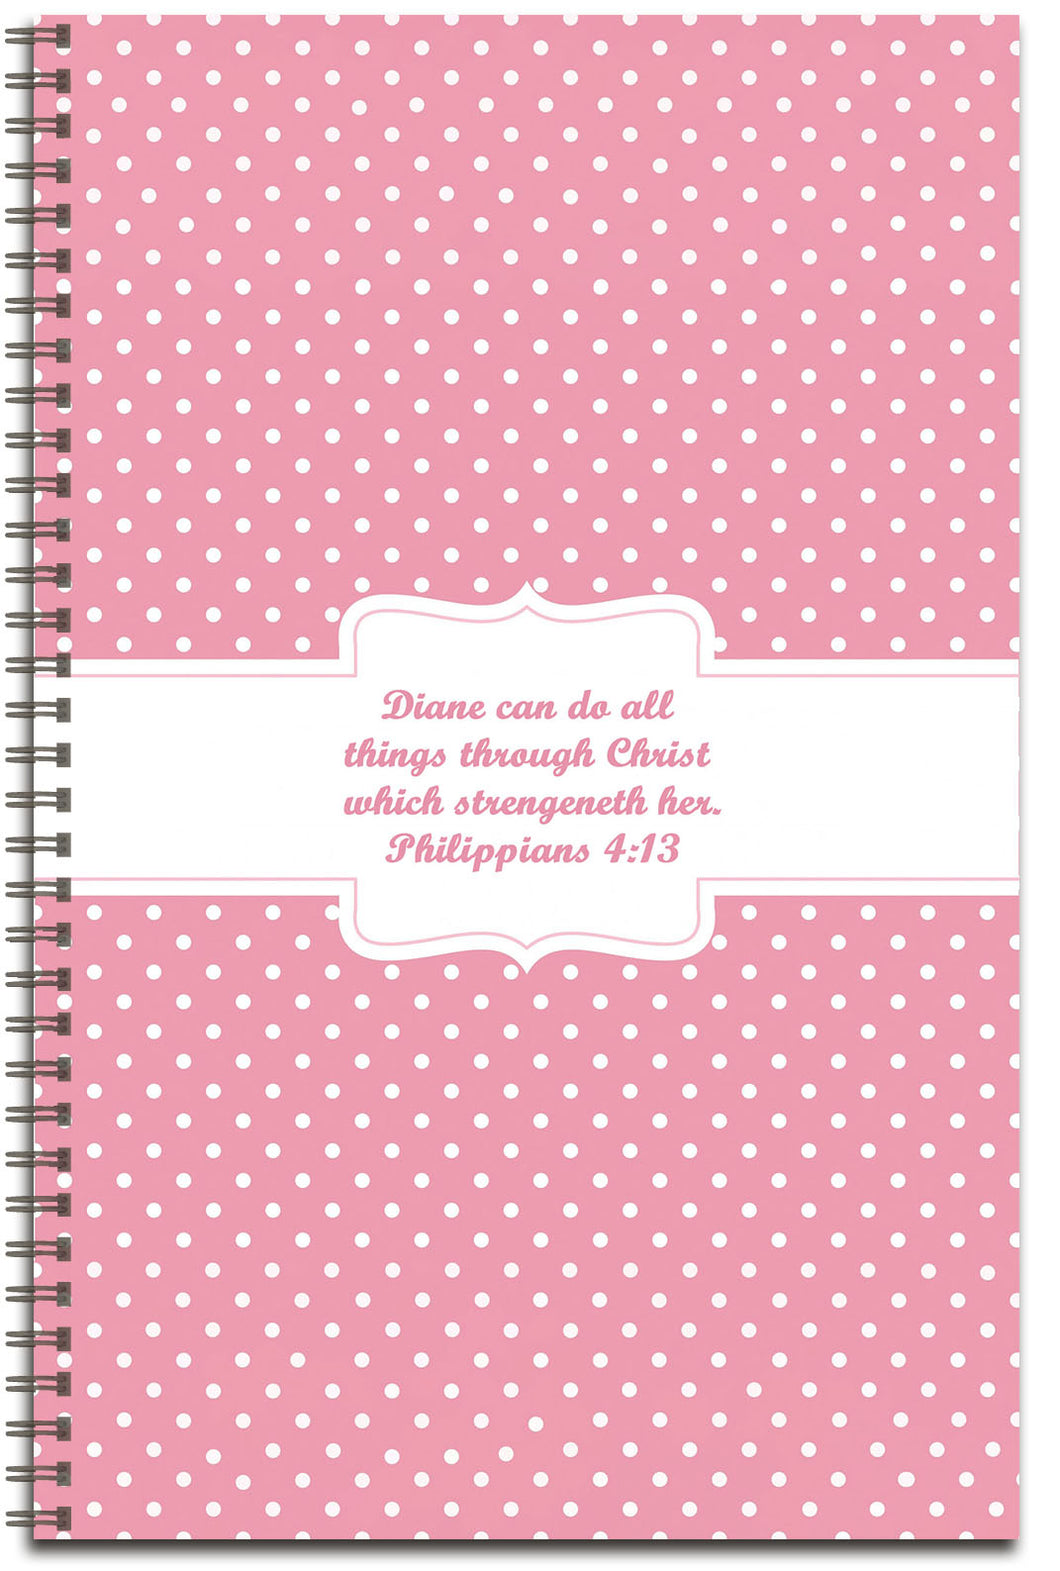 Pink Polka Dots - Personalized Journal